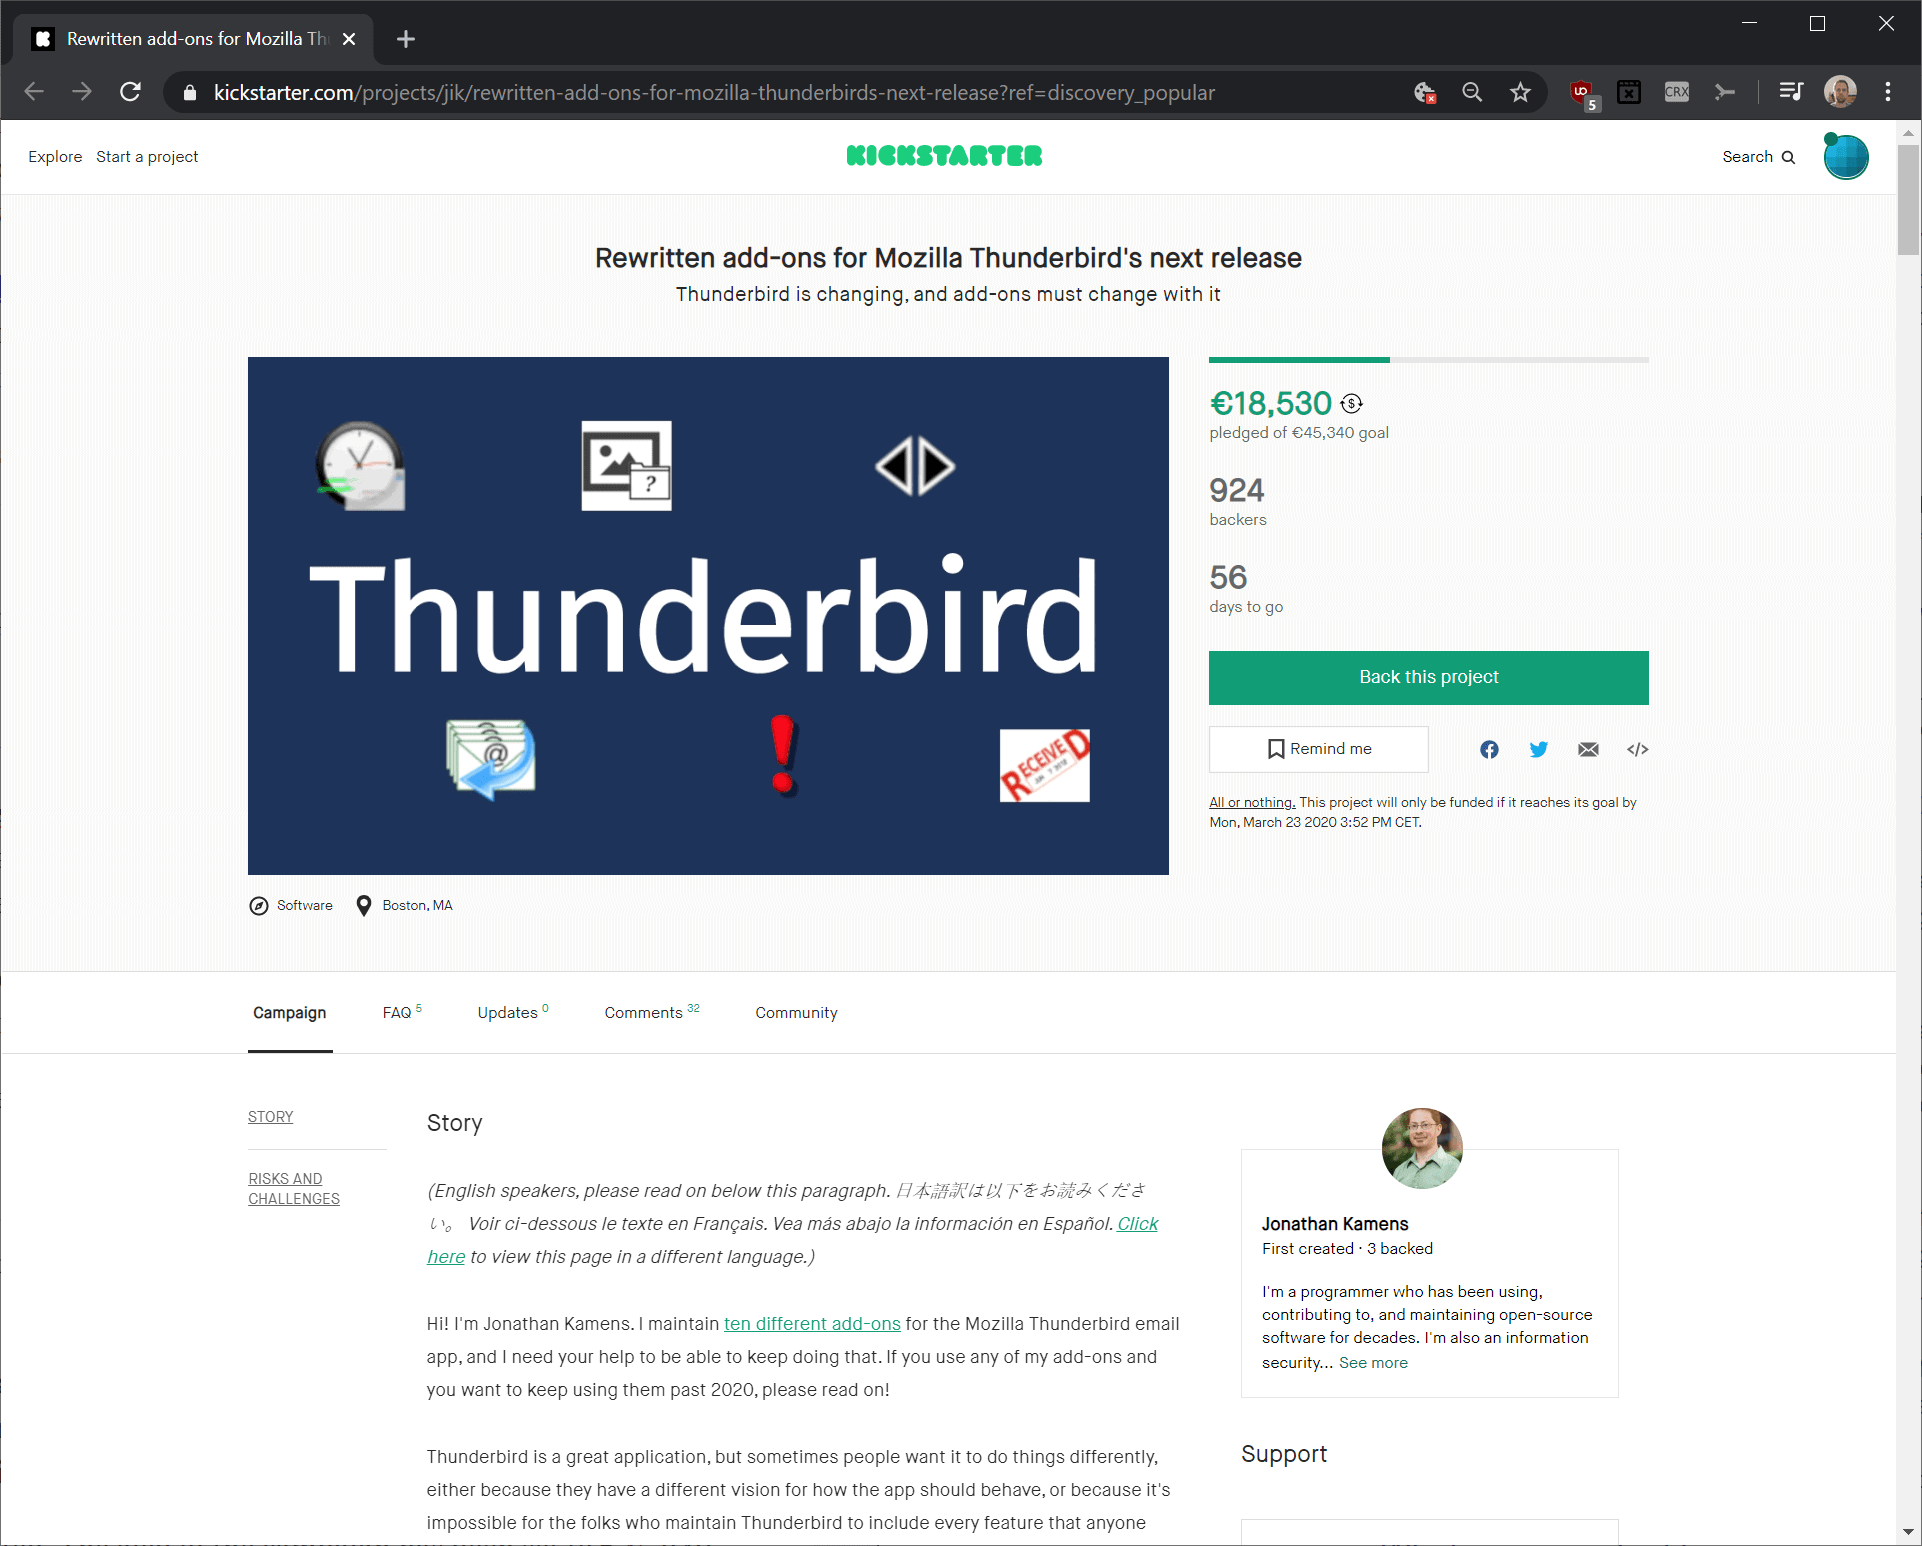 Thunderbird add-on developer launches Kickstarter campaign to ensure continued compatibility